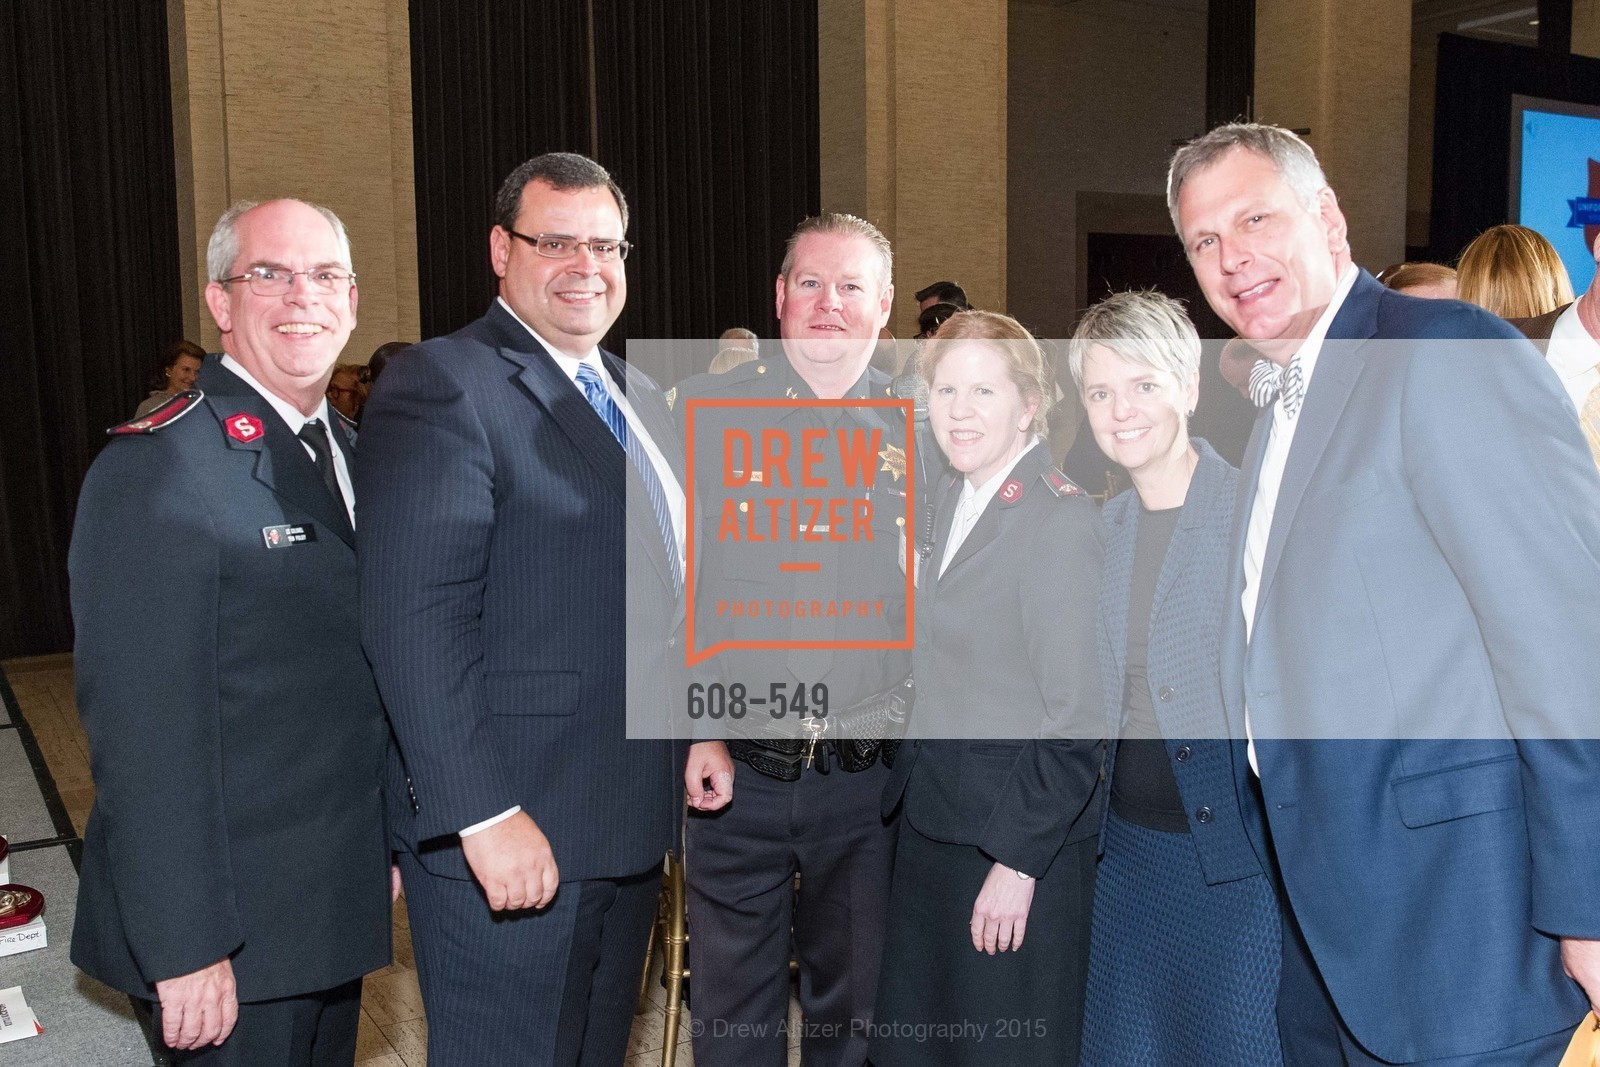 Lt. Col. Tim Foley, Brent Beabout, Mike Redmond, Lt. Col Cindy Foley, Julia Beabout, Ernst Bauer, The Salvation Army's 12th Annual Holiday Luncheon Kettle Kickoff, The Bently Reserve. 301 Battery St, November 18th, 2015,Drew Altizer, Drew Altizer Photography, full-service agency, private events, San Francisco photographer, photographer california